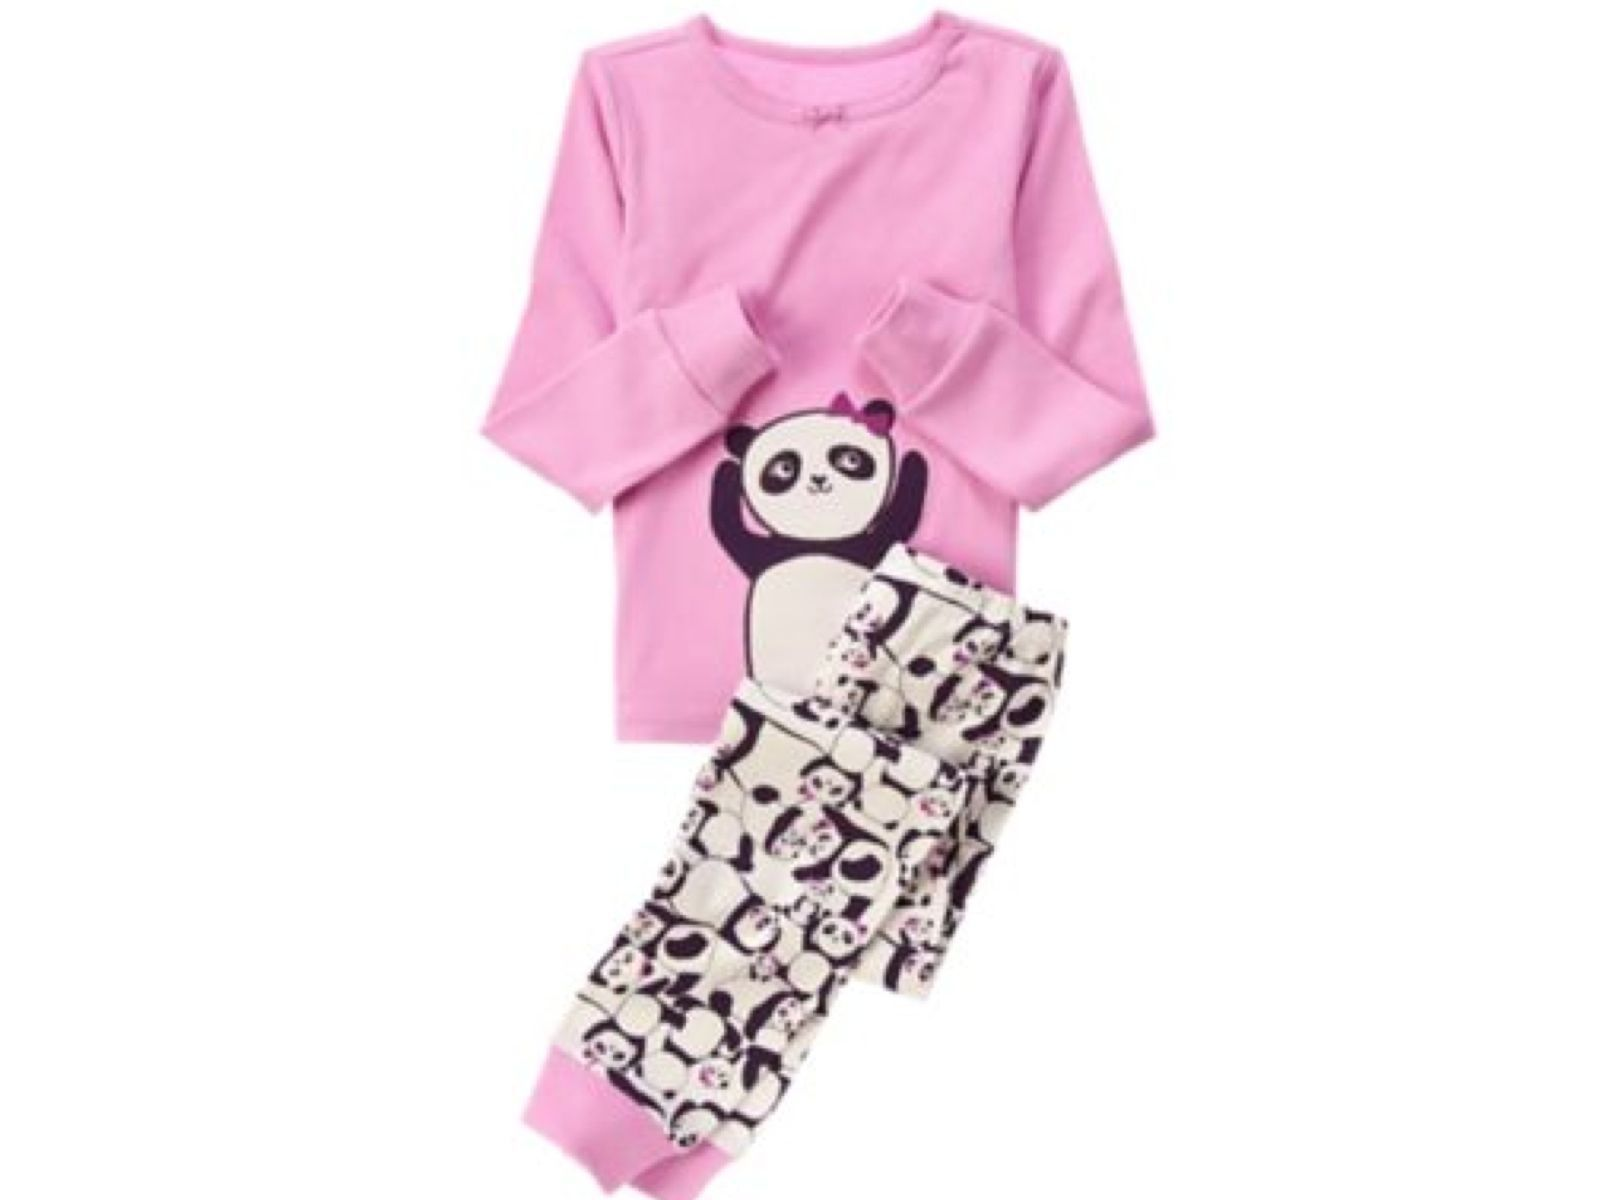 NWT Gymboree Boys Sleepwear Pjs Gymmies Pajamas Set